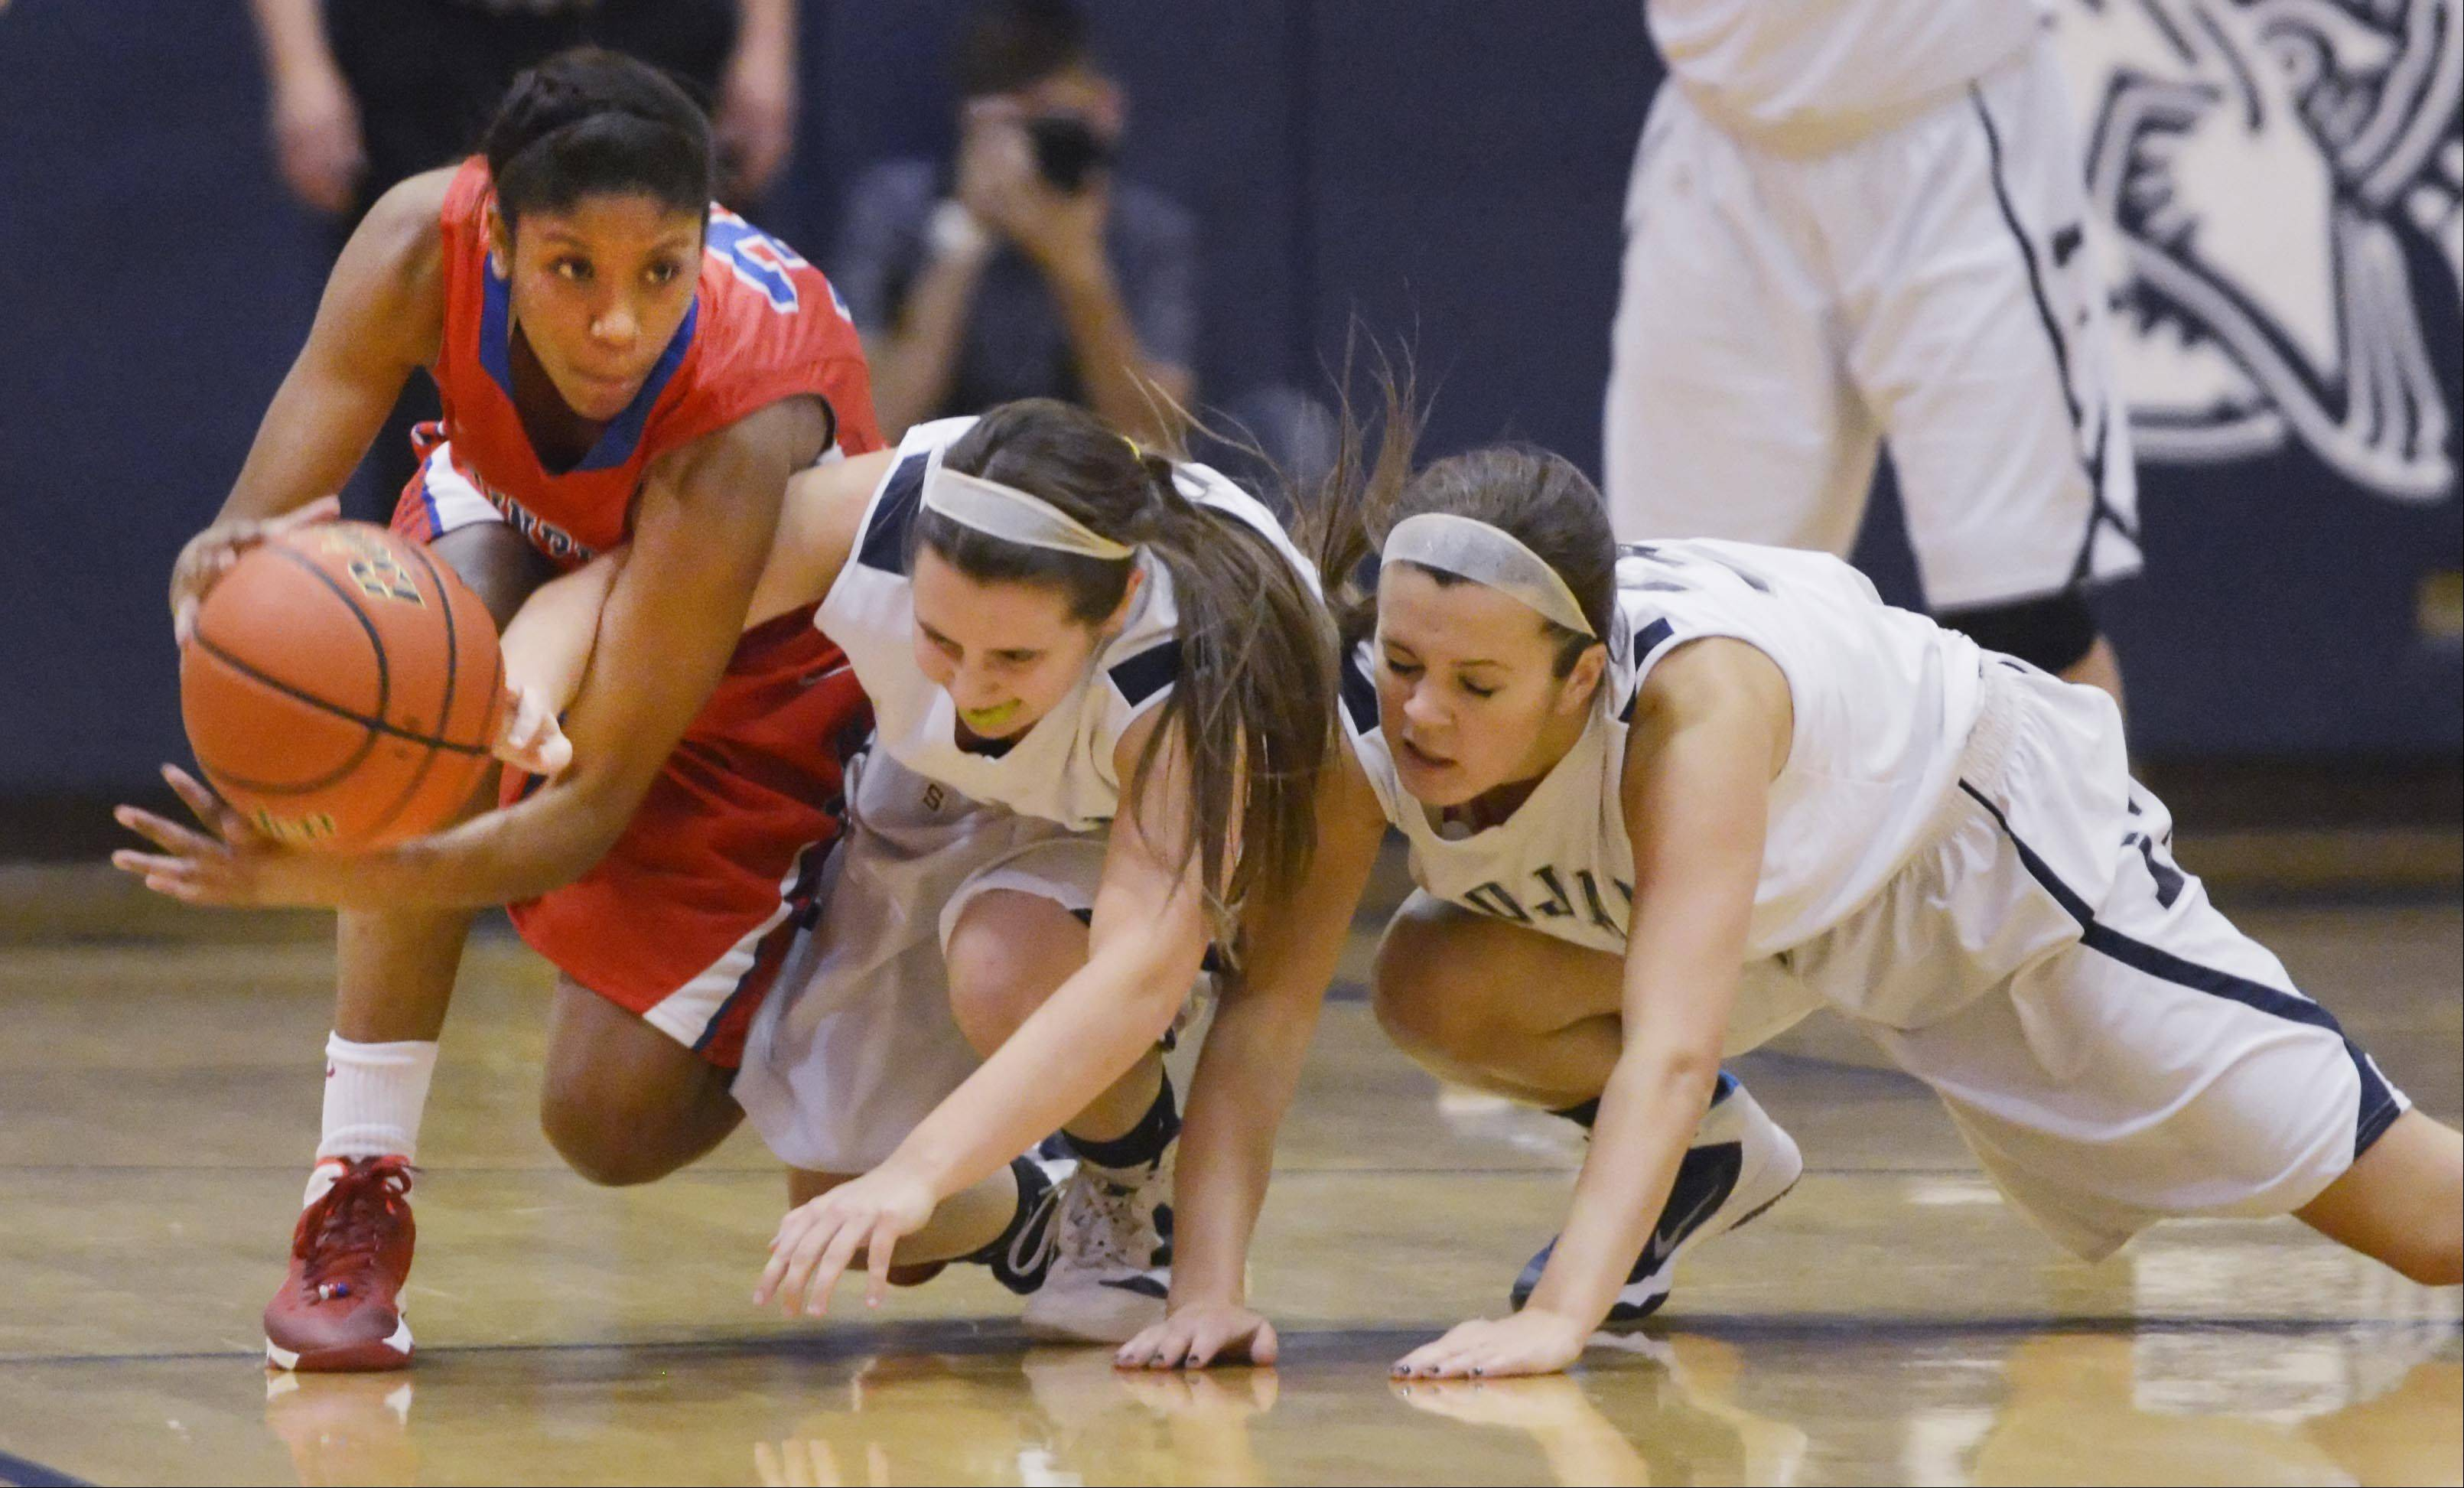 Dundee-Crown's Kayla Lawernce and Cary-Grove's Amy Clemment and Chrissy Sopchyk fight for a loose ball.